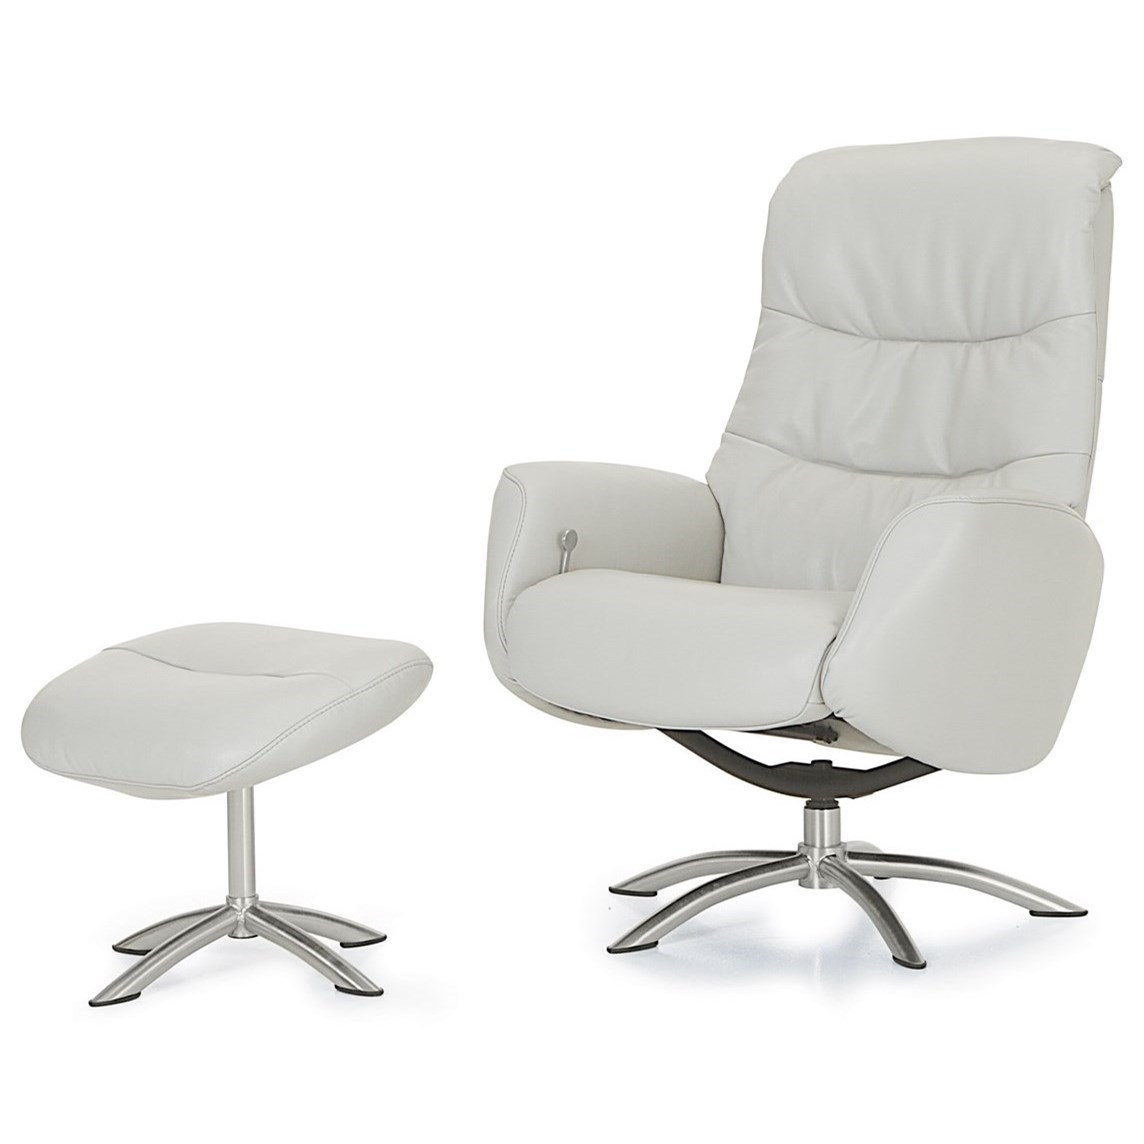 Superieur Palliser Quantum Contemporary Reclining Chair And Ottoman With Chrome Bases